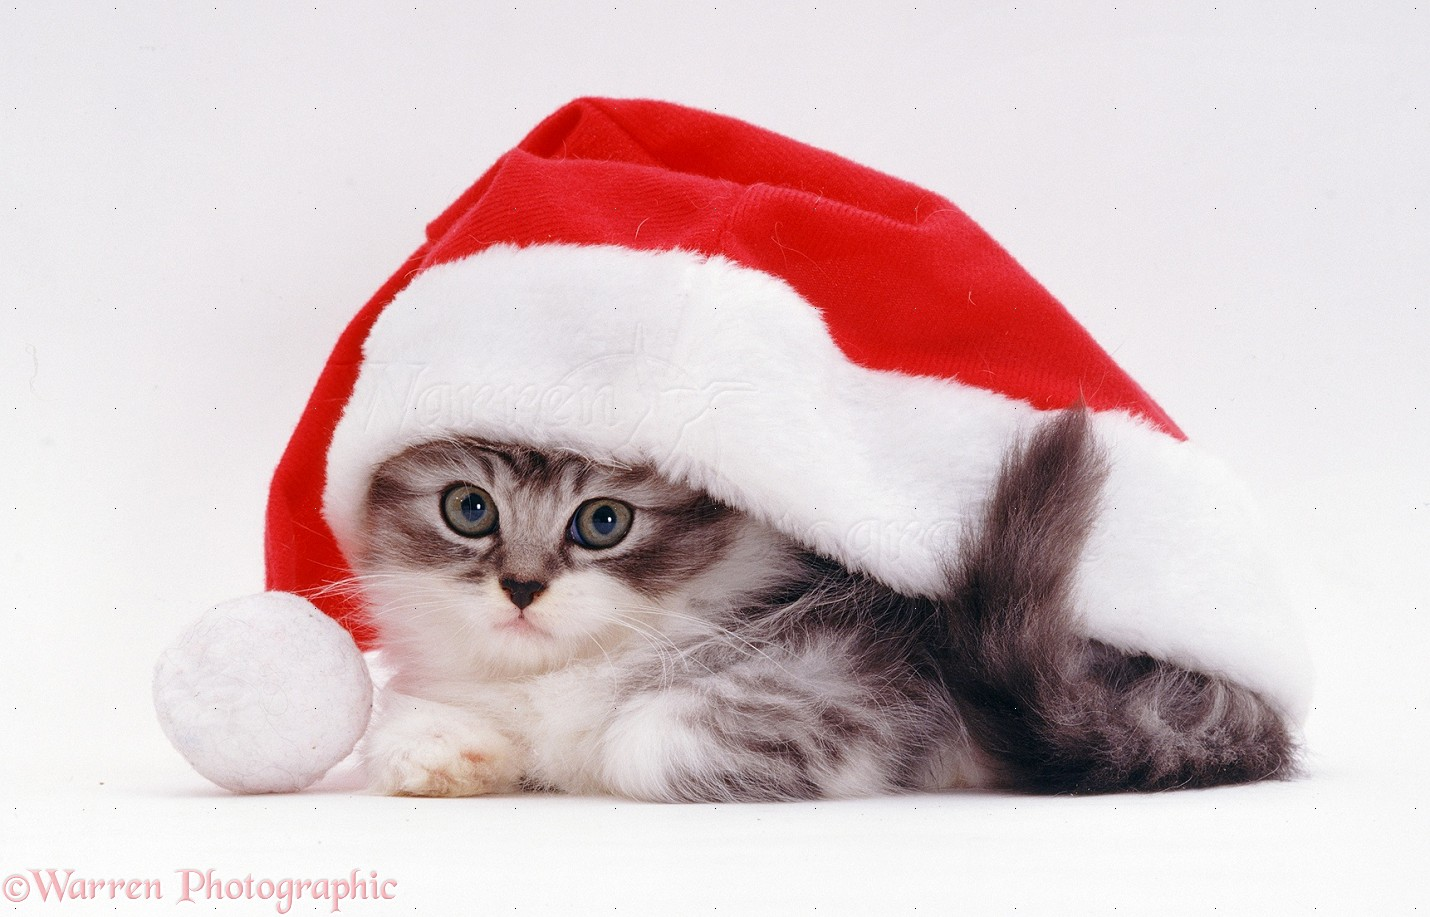 Kitten in a Santa hat photo - WP08381